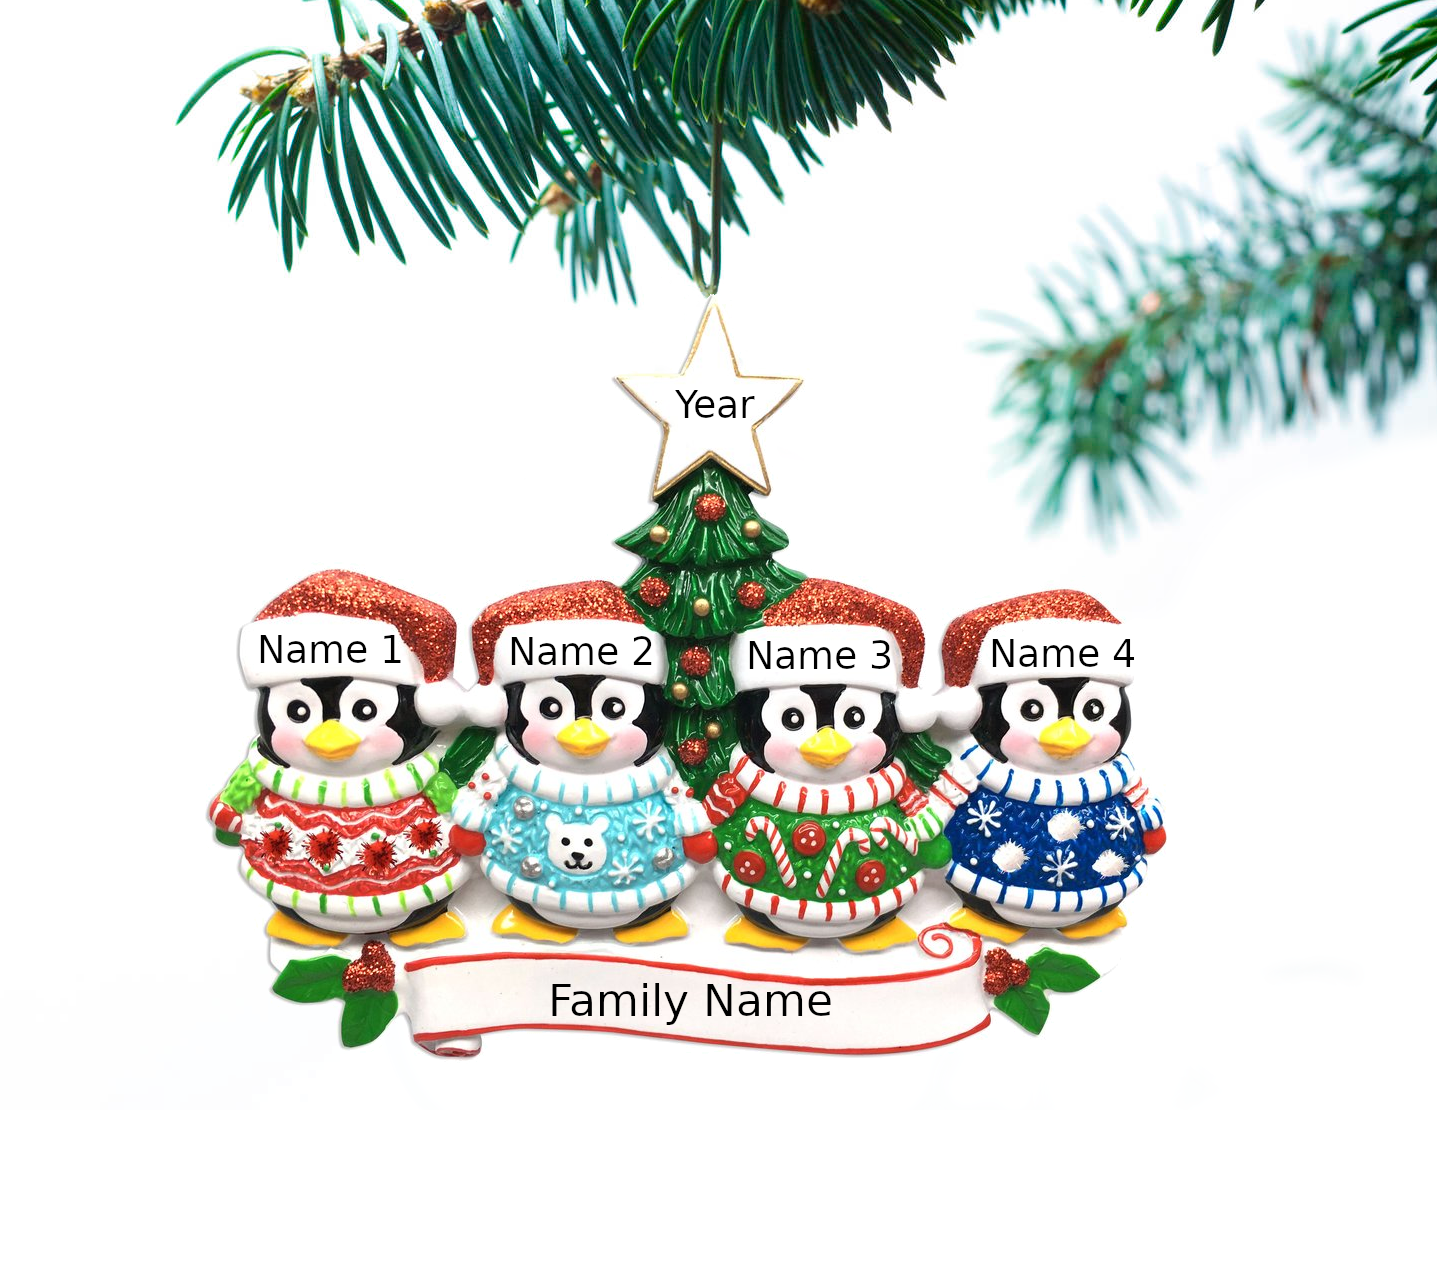 Christmas Decorations Trees Name Personalized New